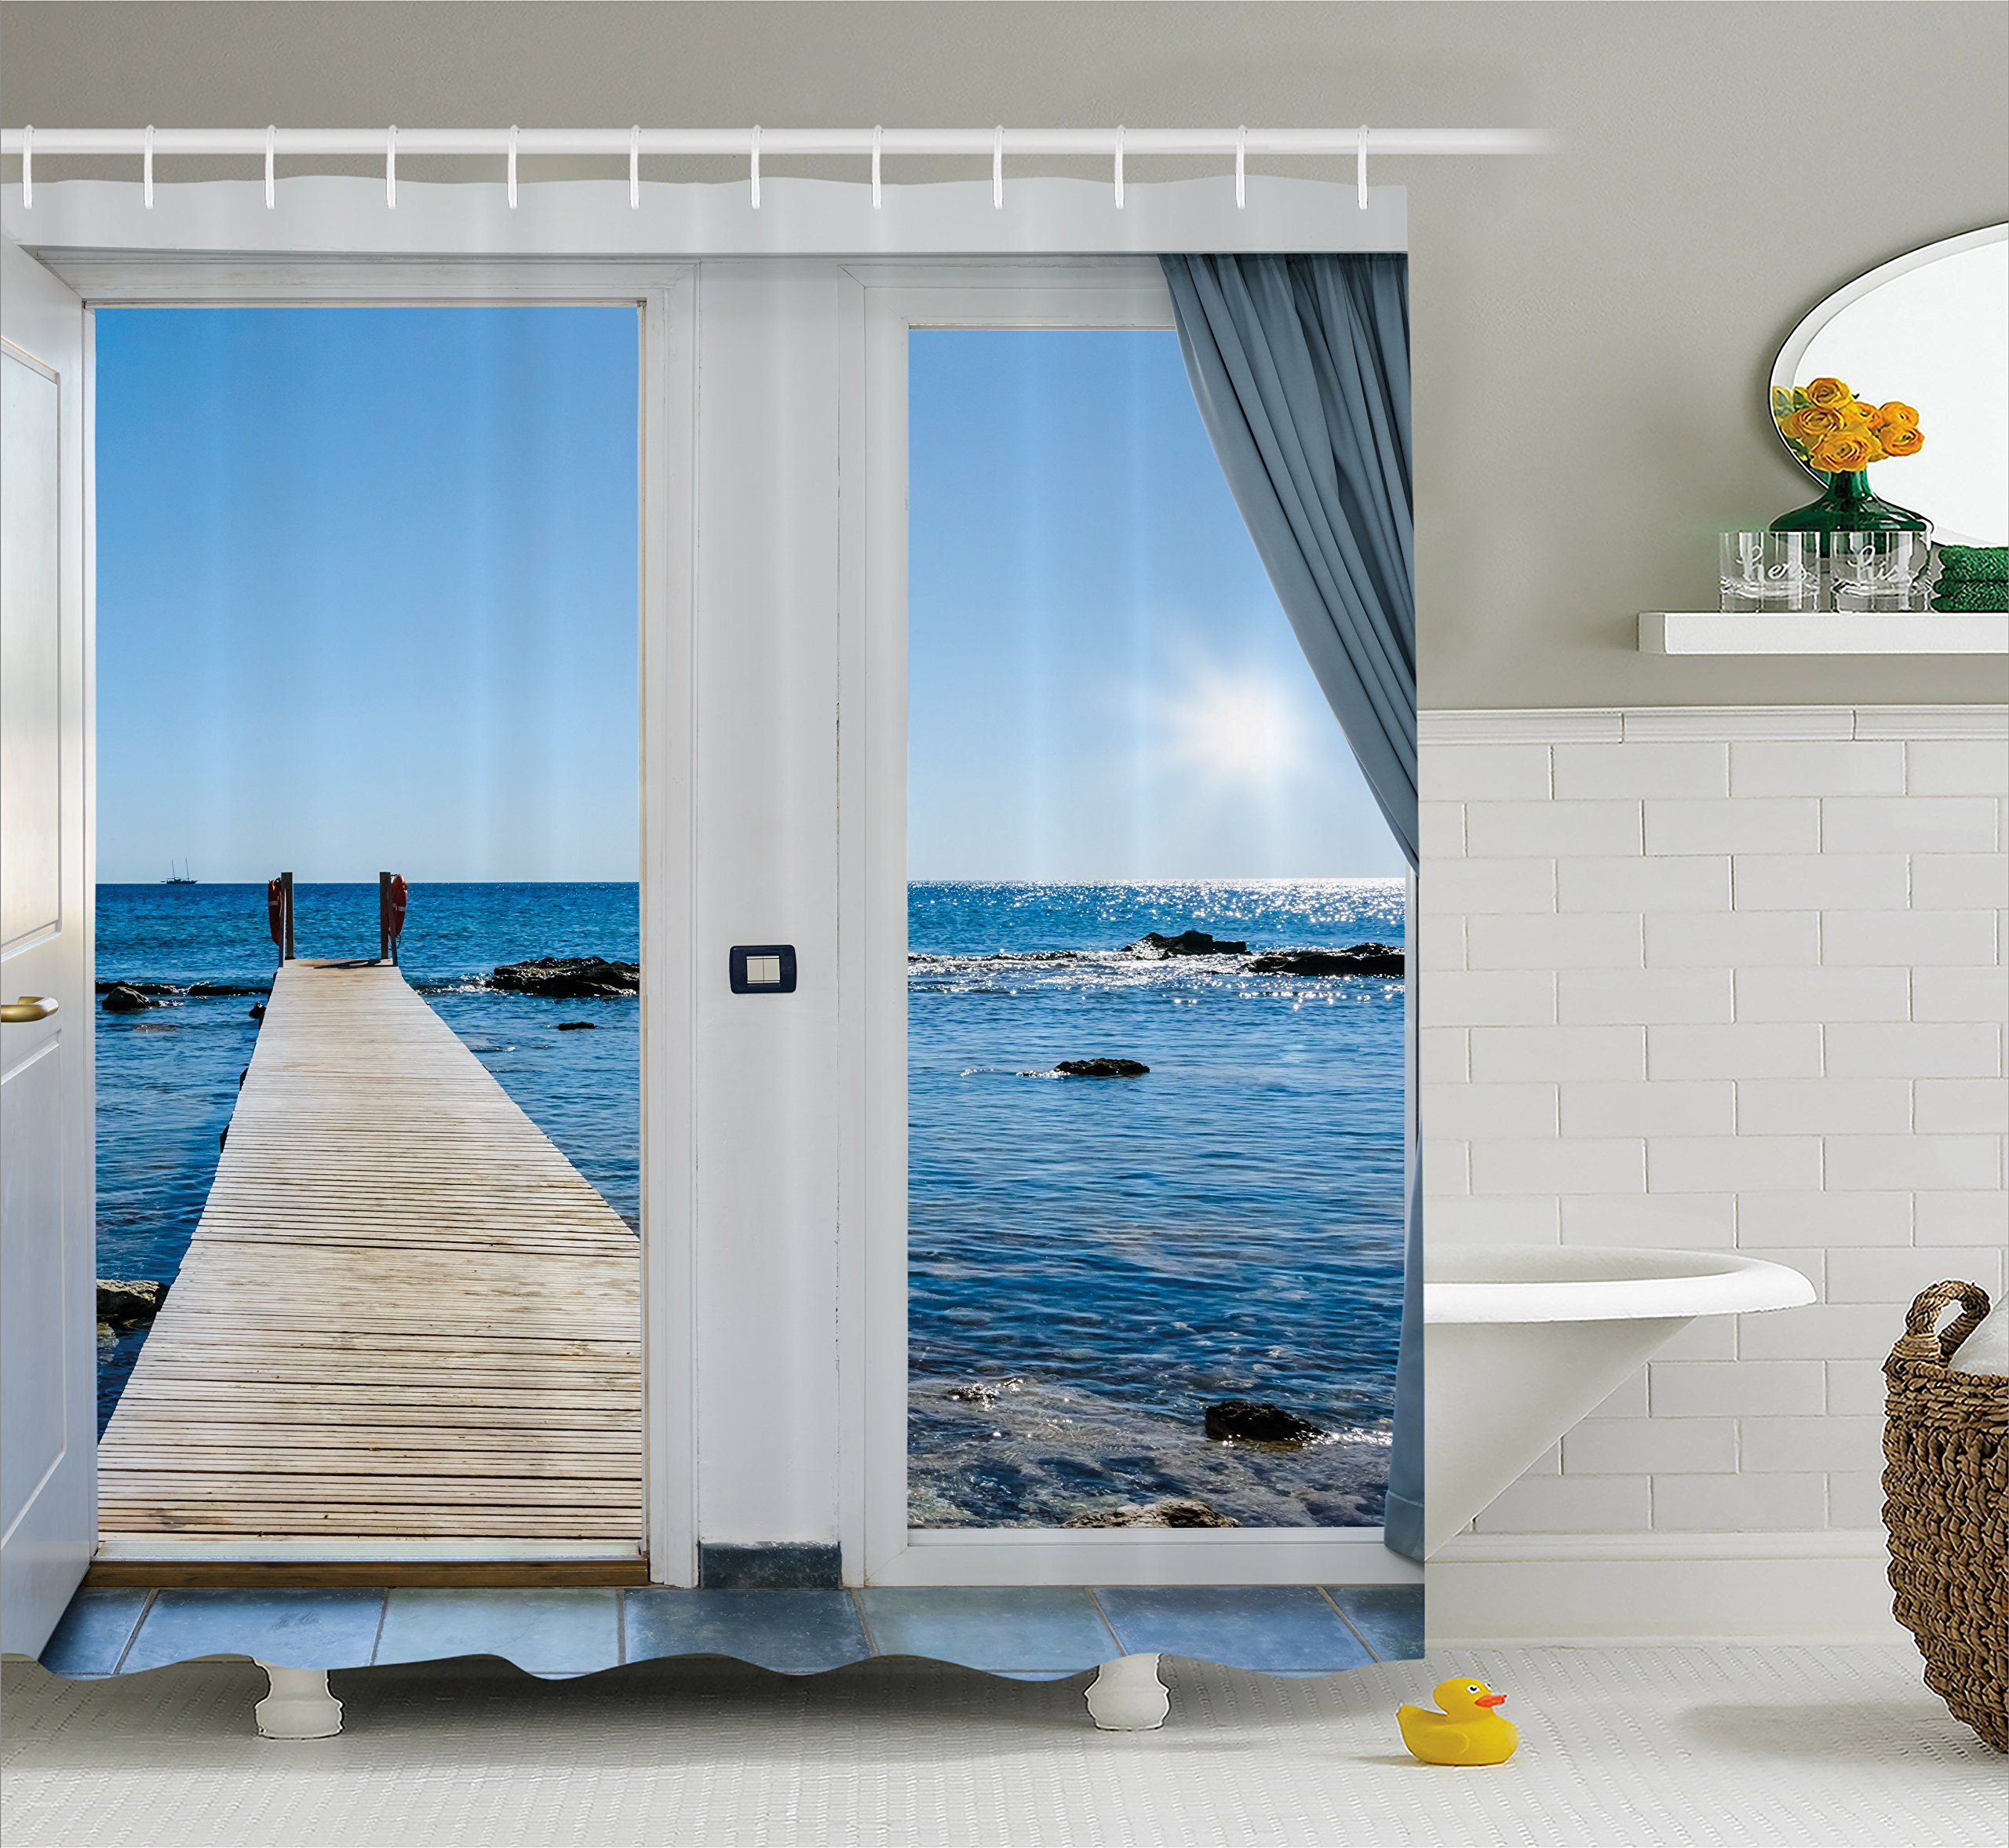 Ambesonne Beach Theme Decor Shower Curtain, Coastal Decor Ocean Sea Sunny Scenery with Patio from Window, Fabric Bathroom Decor Set with Hooks, 75 Inches Long, Light Blue and White